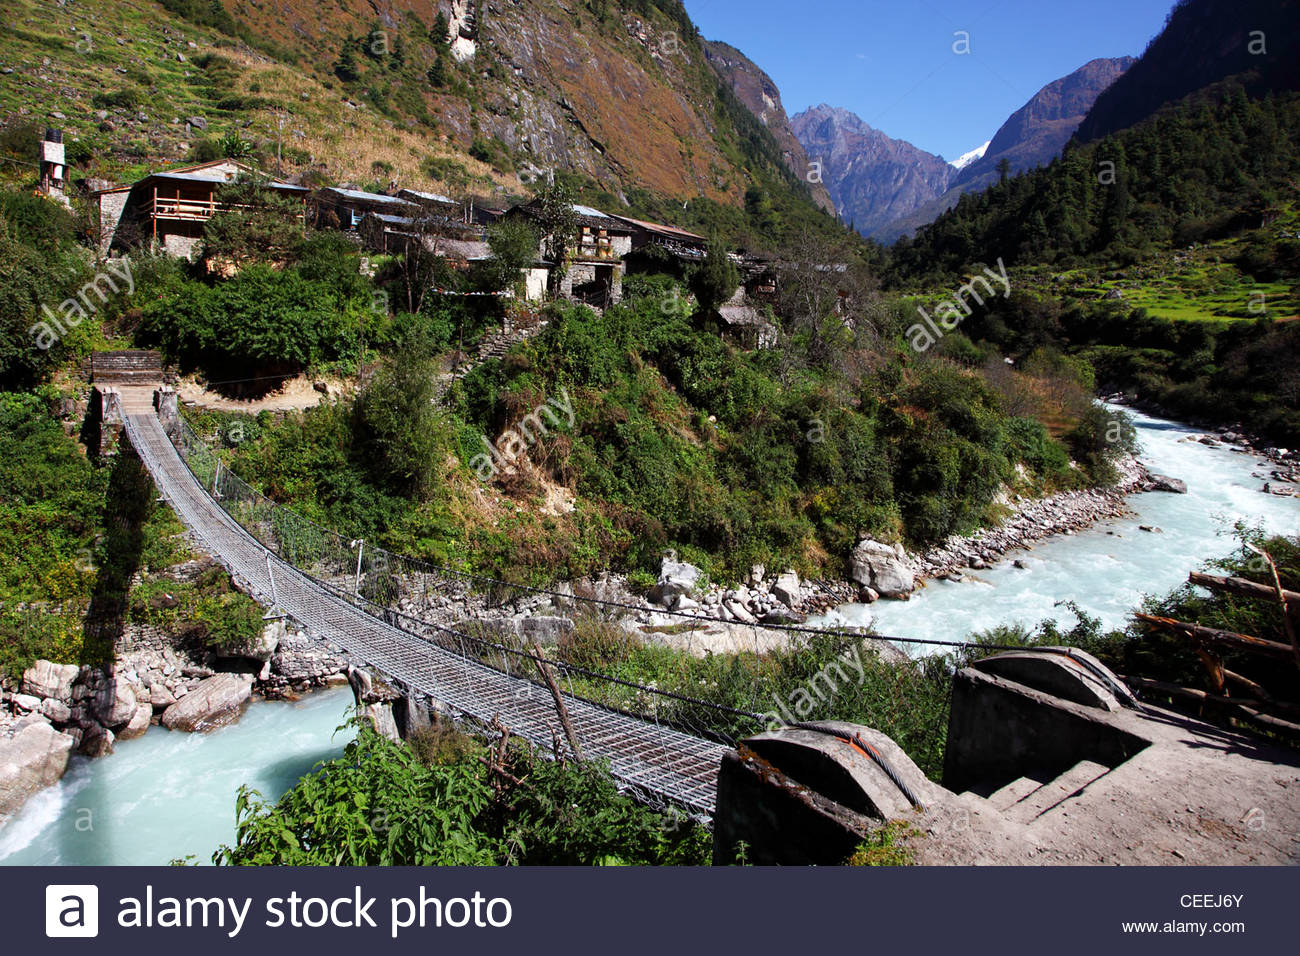 Village of Tilche along the Dudh Khola river, Manang district - Stock Image